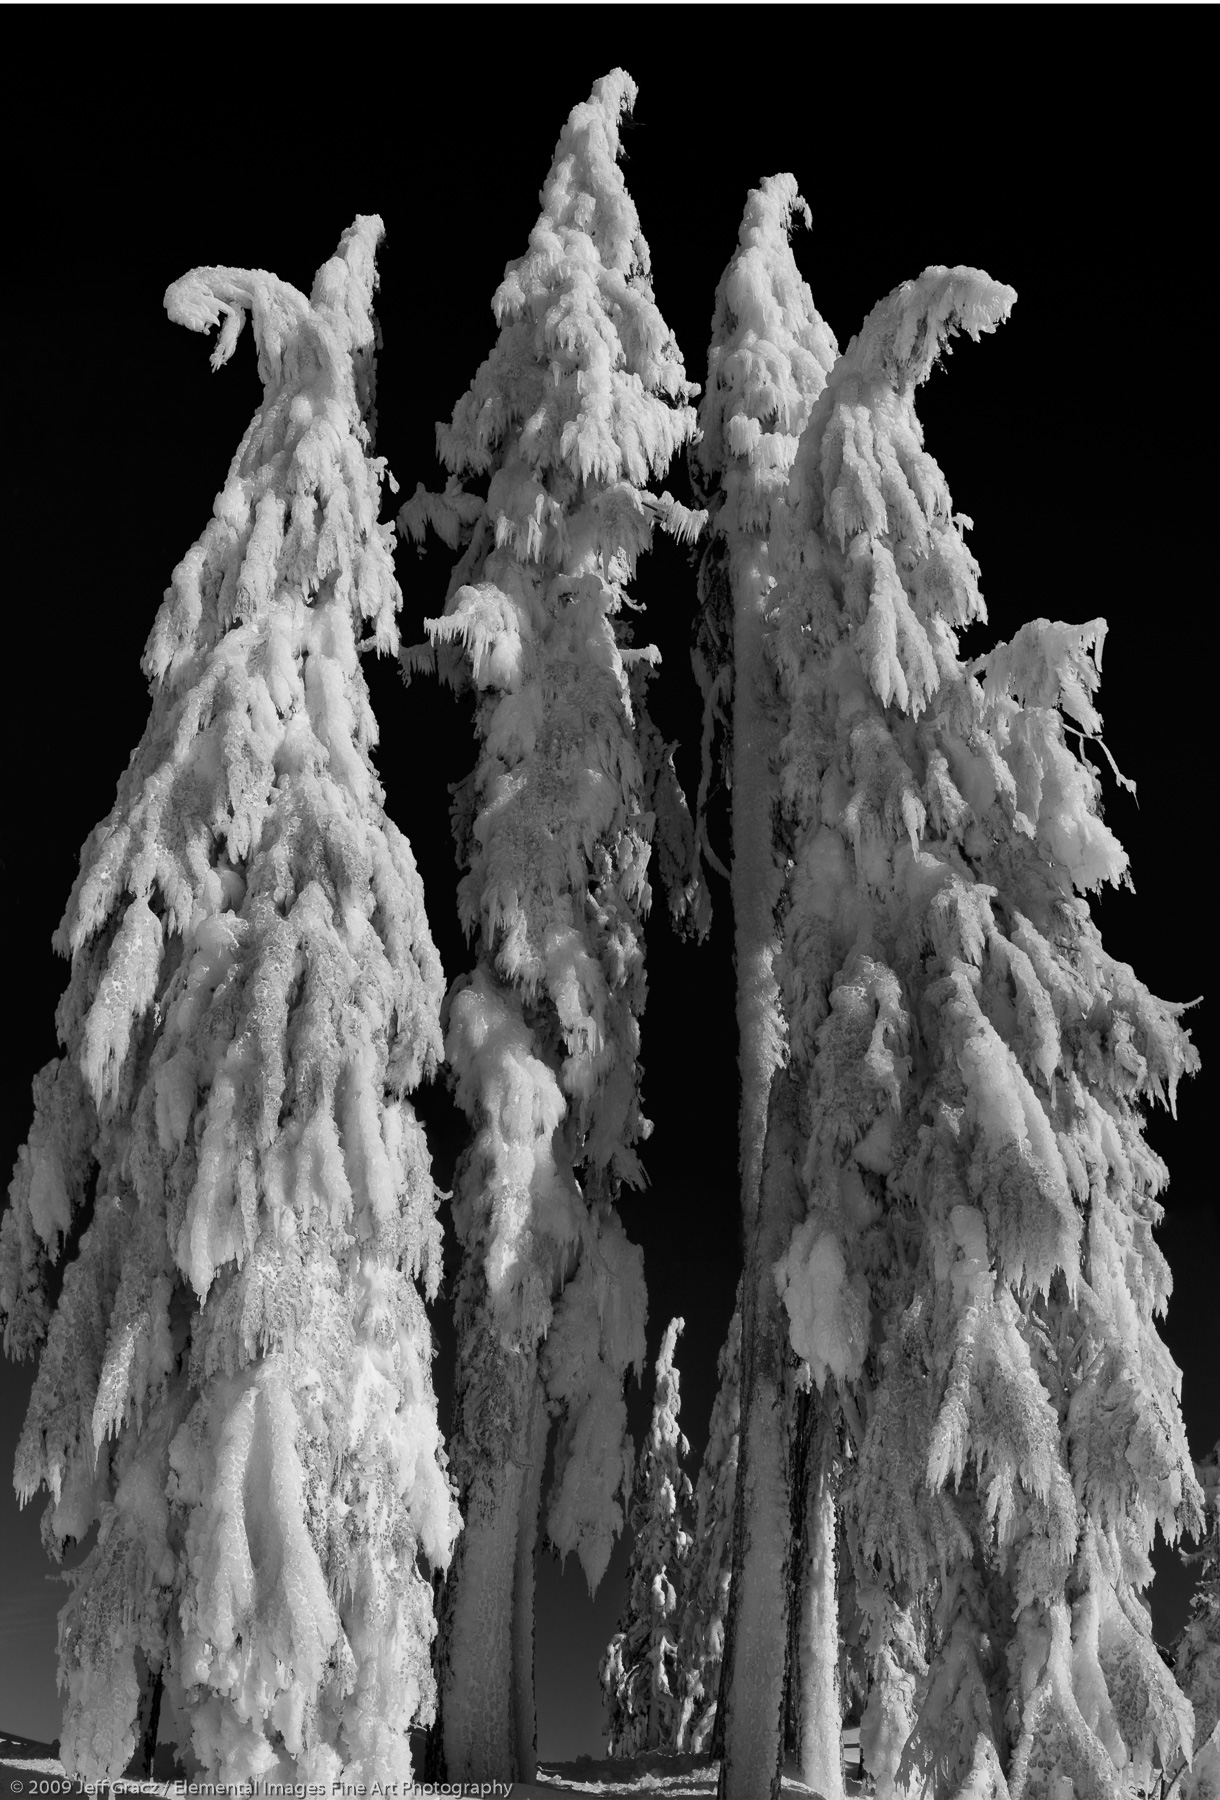 Matriarchs of Ice      OR   USA - © © 2009 Jeff Gracz / Elemental Images Fine Art Photography - All Rights Reserved Worldwide